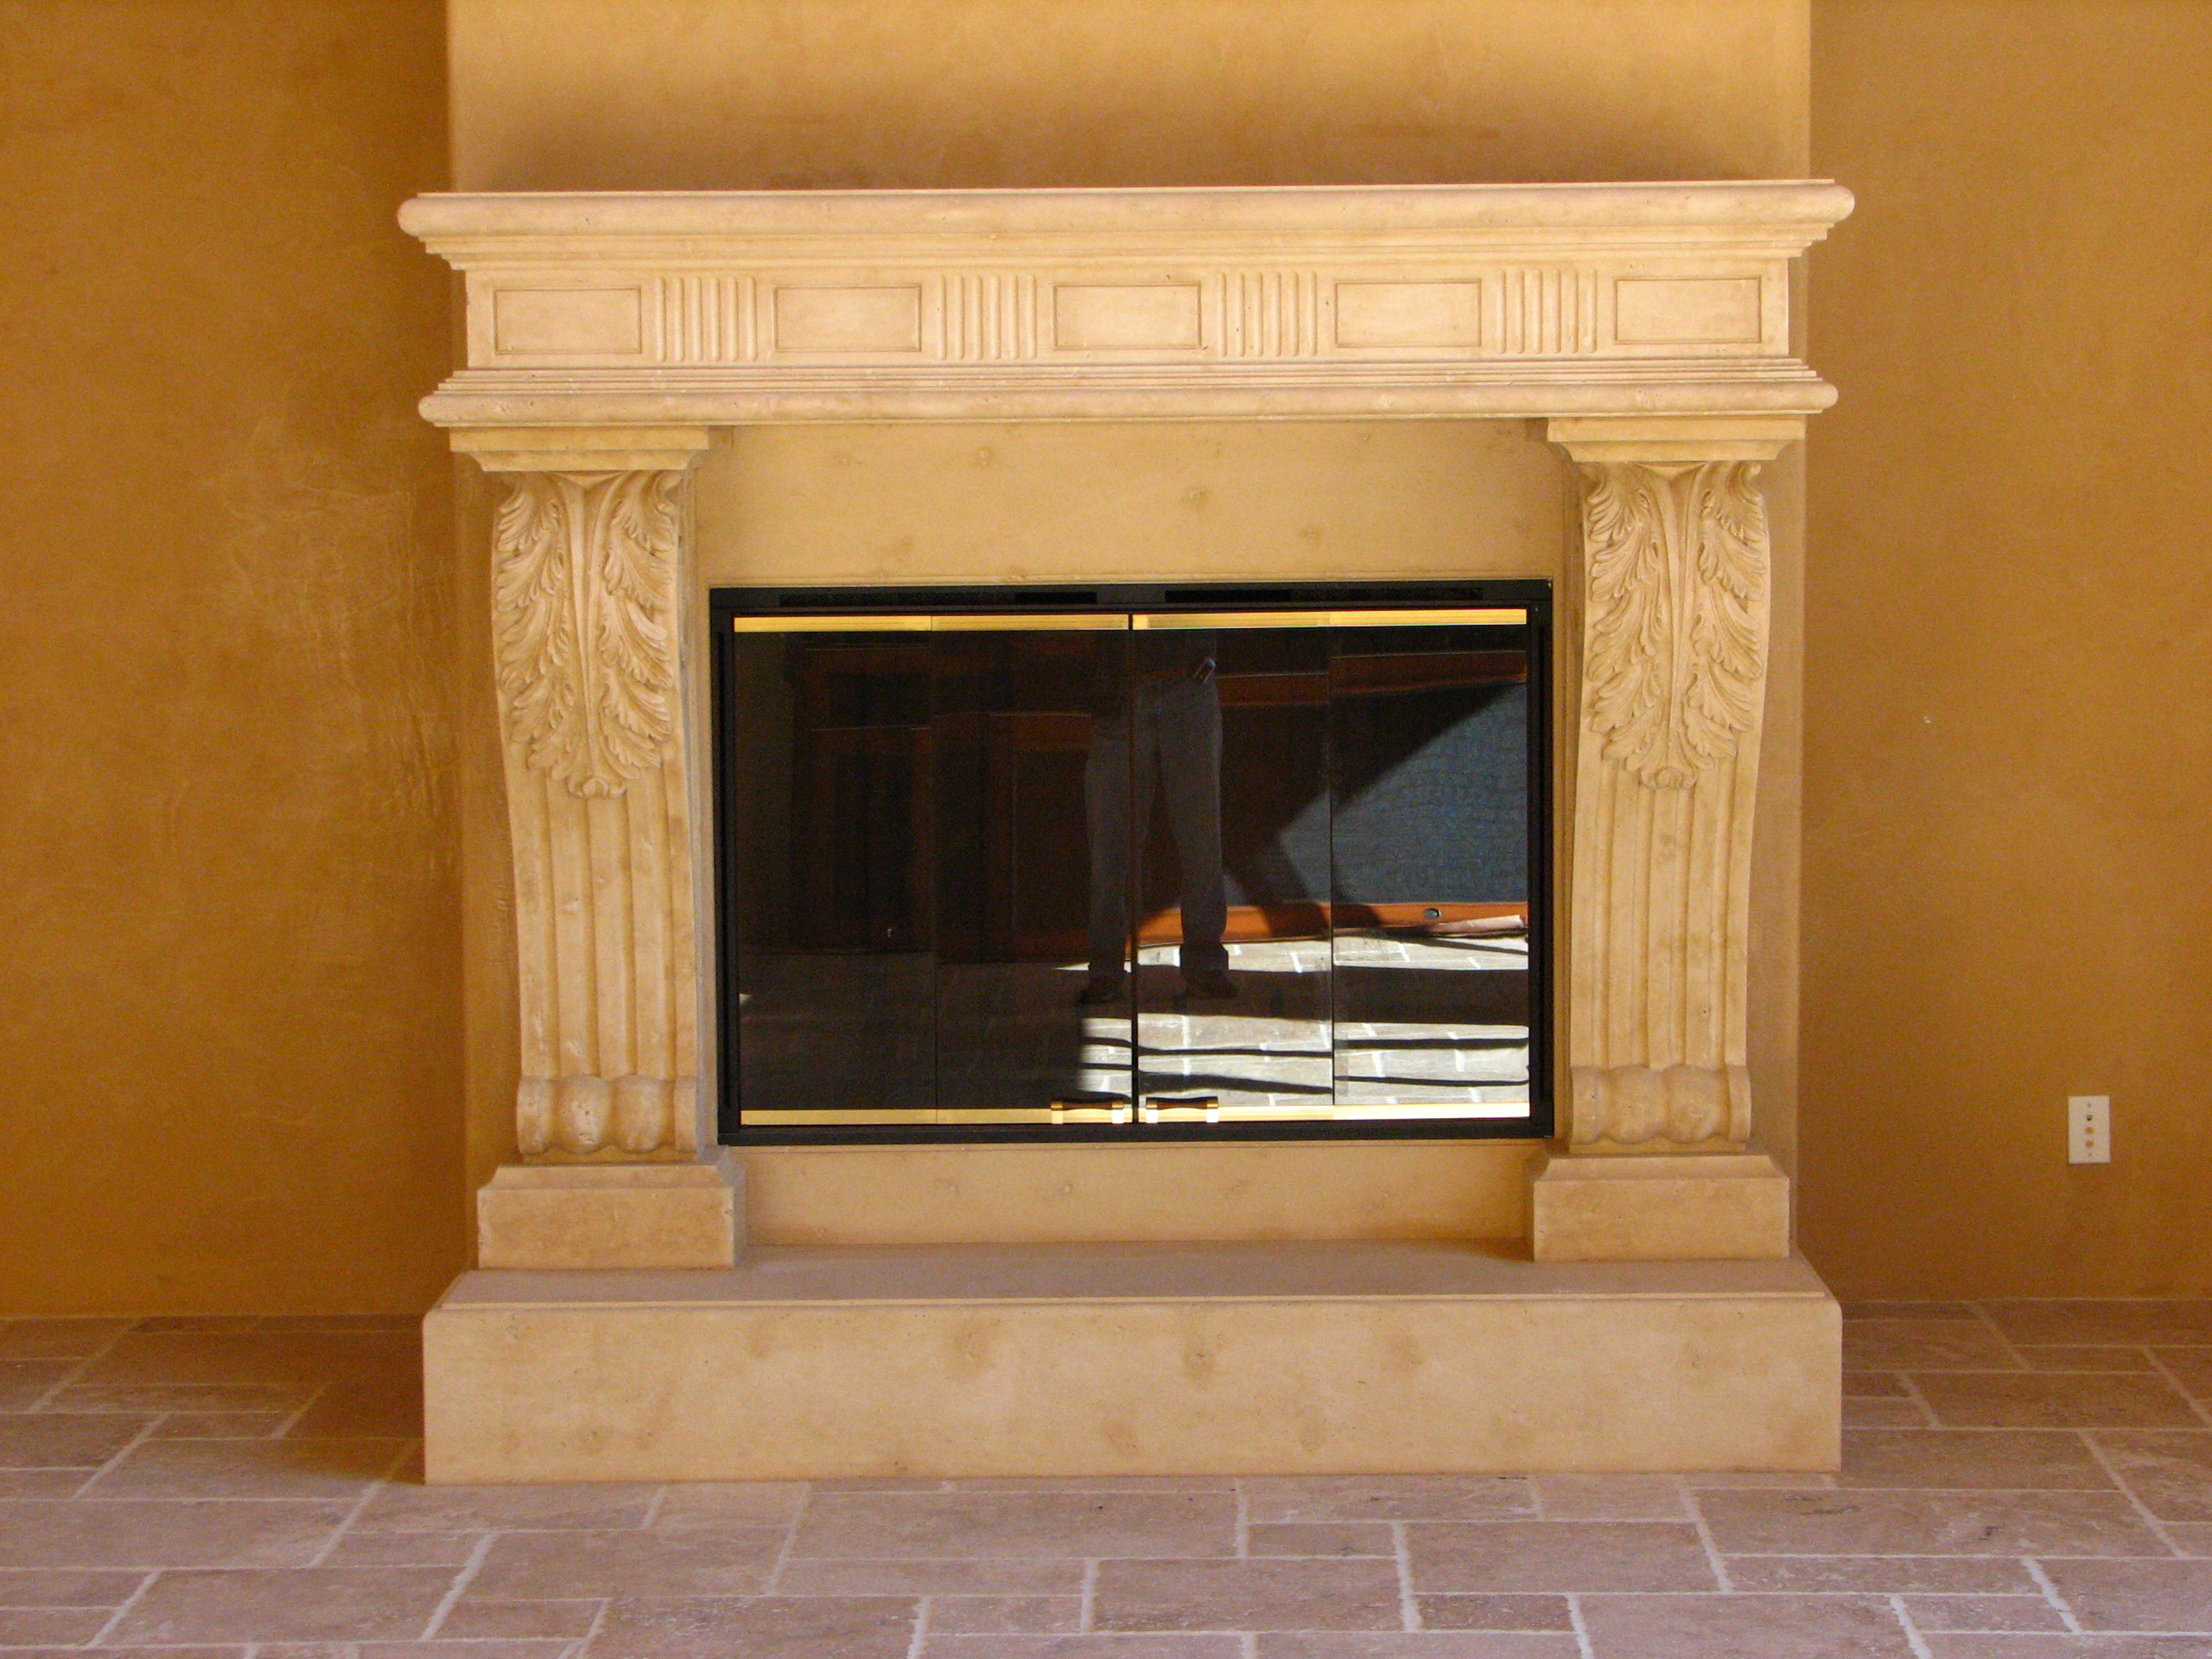 Travertine Stone Fireplace Designs : Fireplaces westside tile and stone